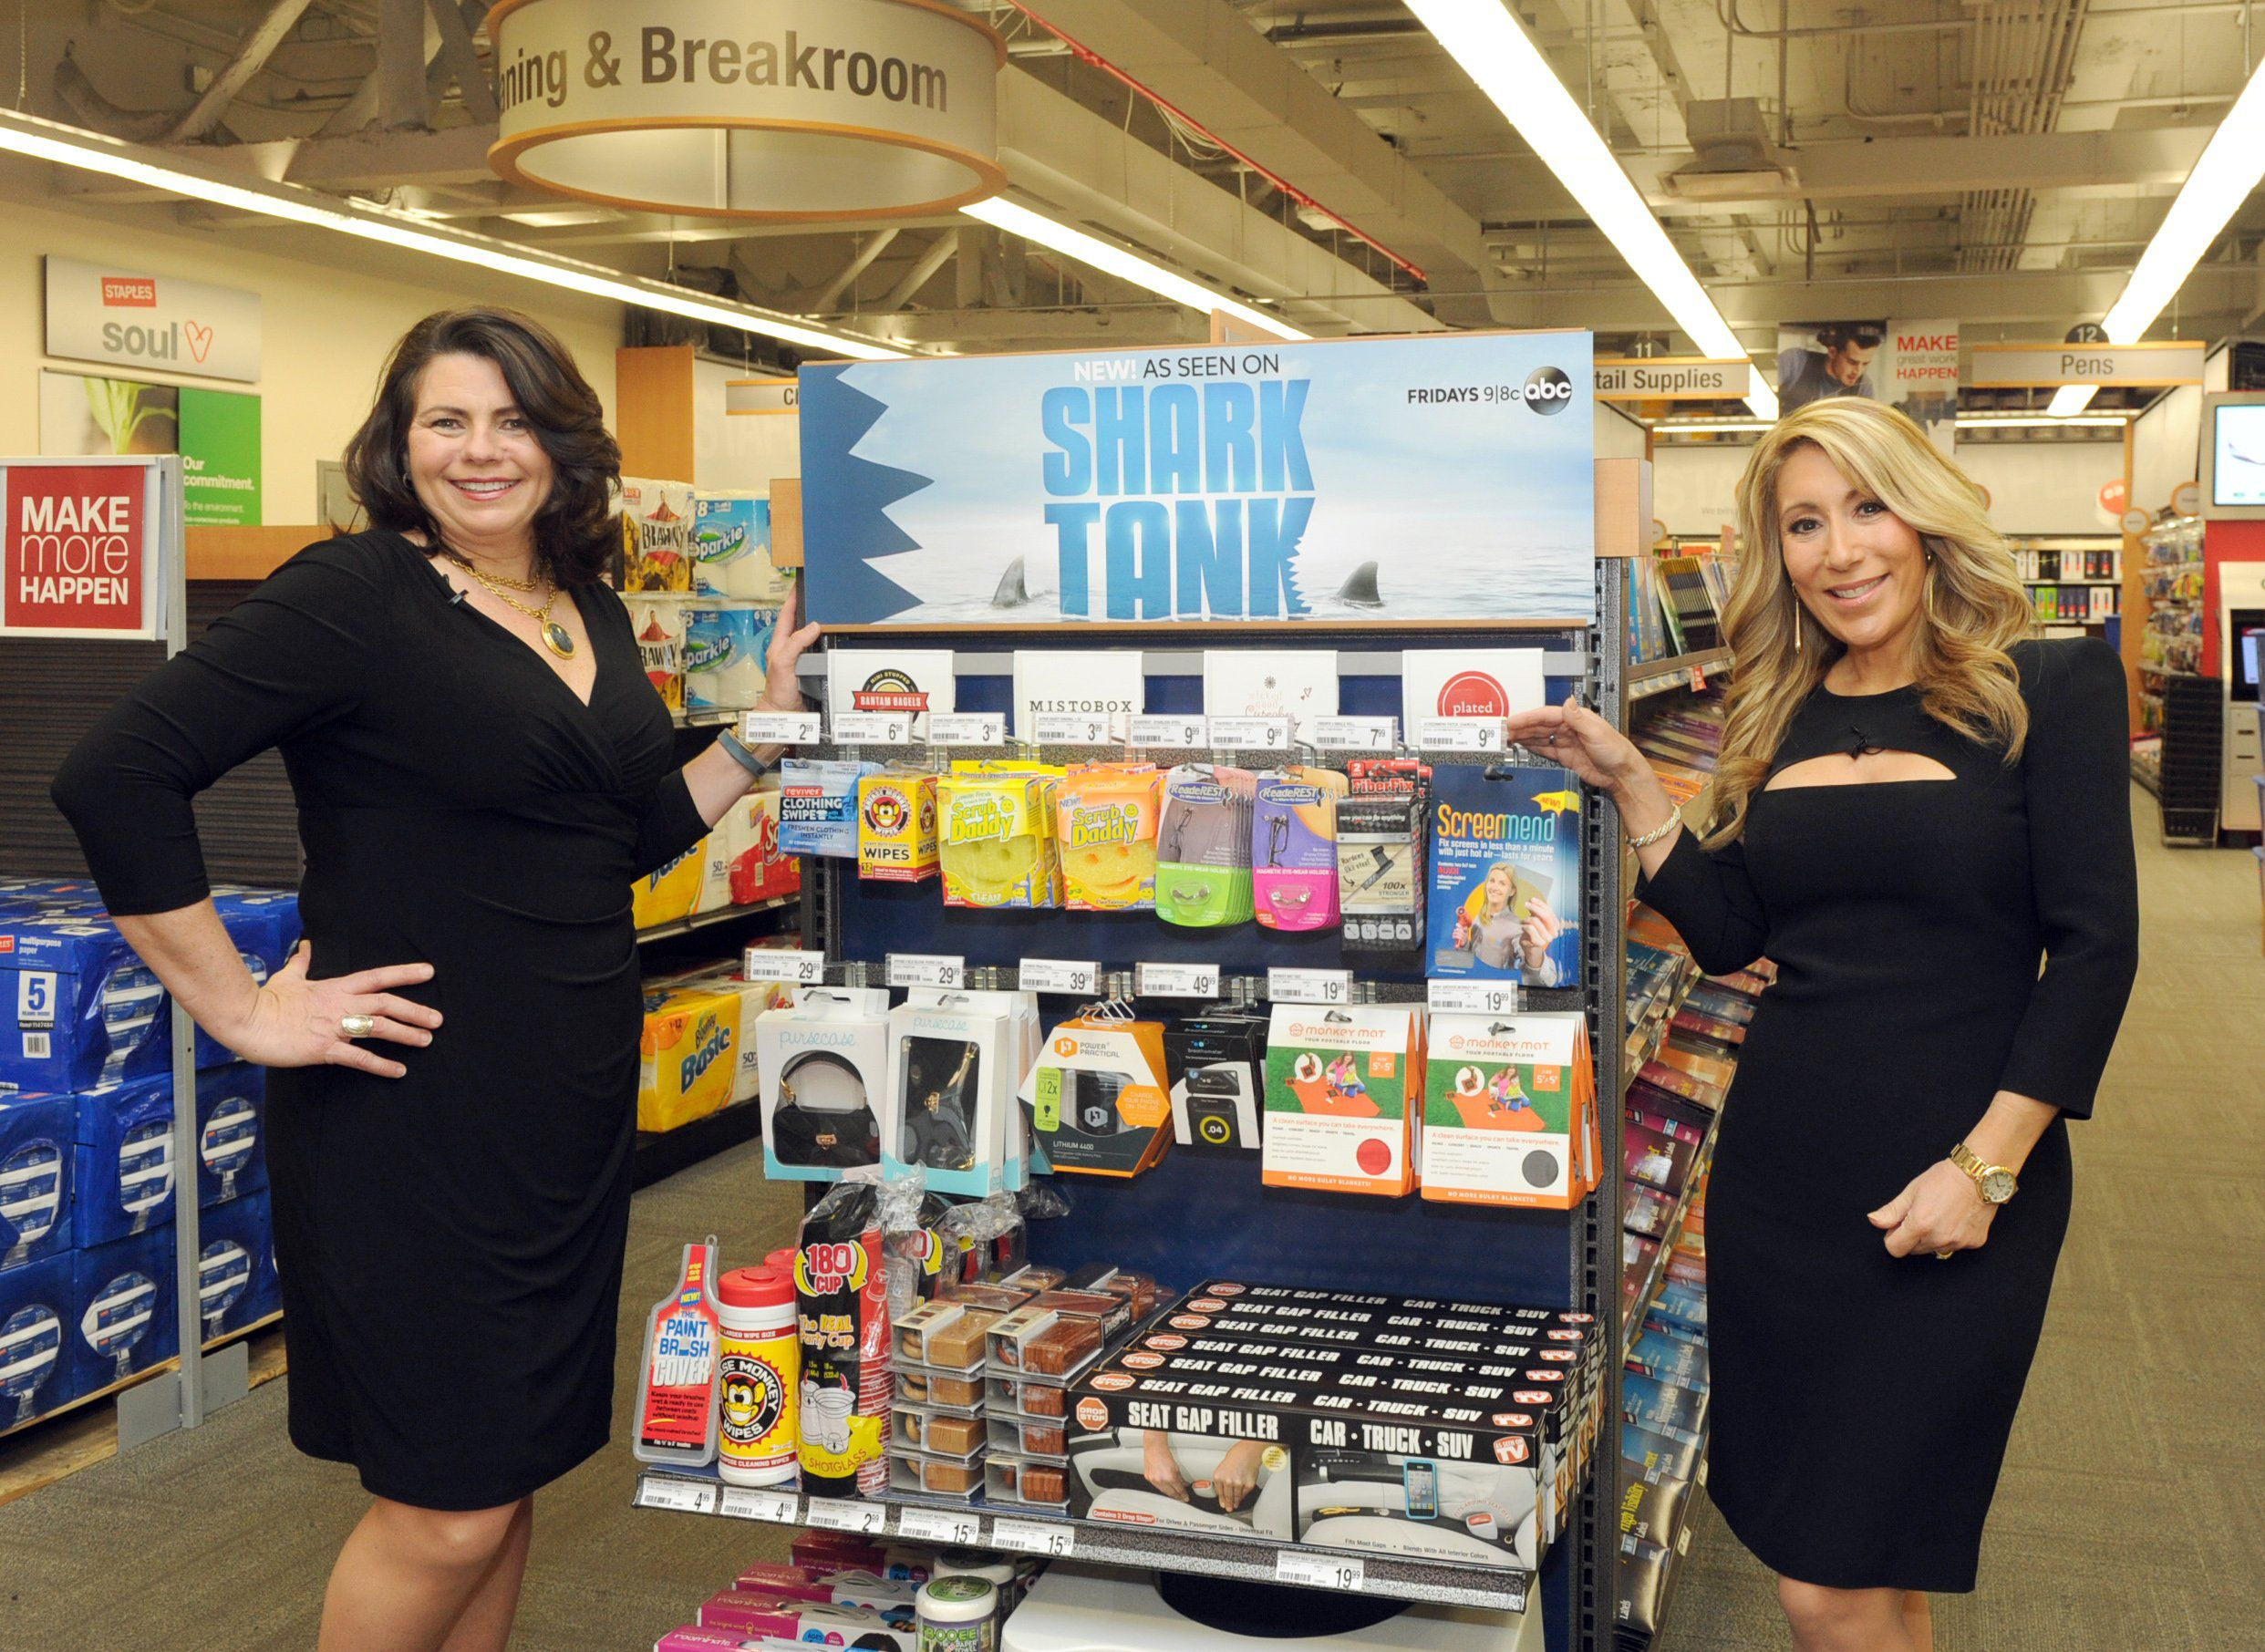 8 Most Successful Products from Shark Tank